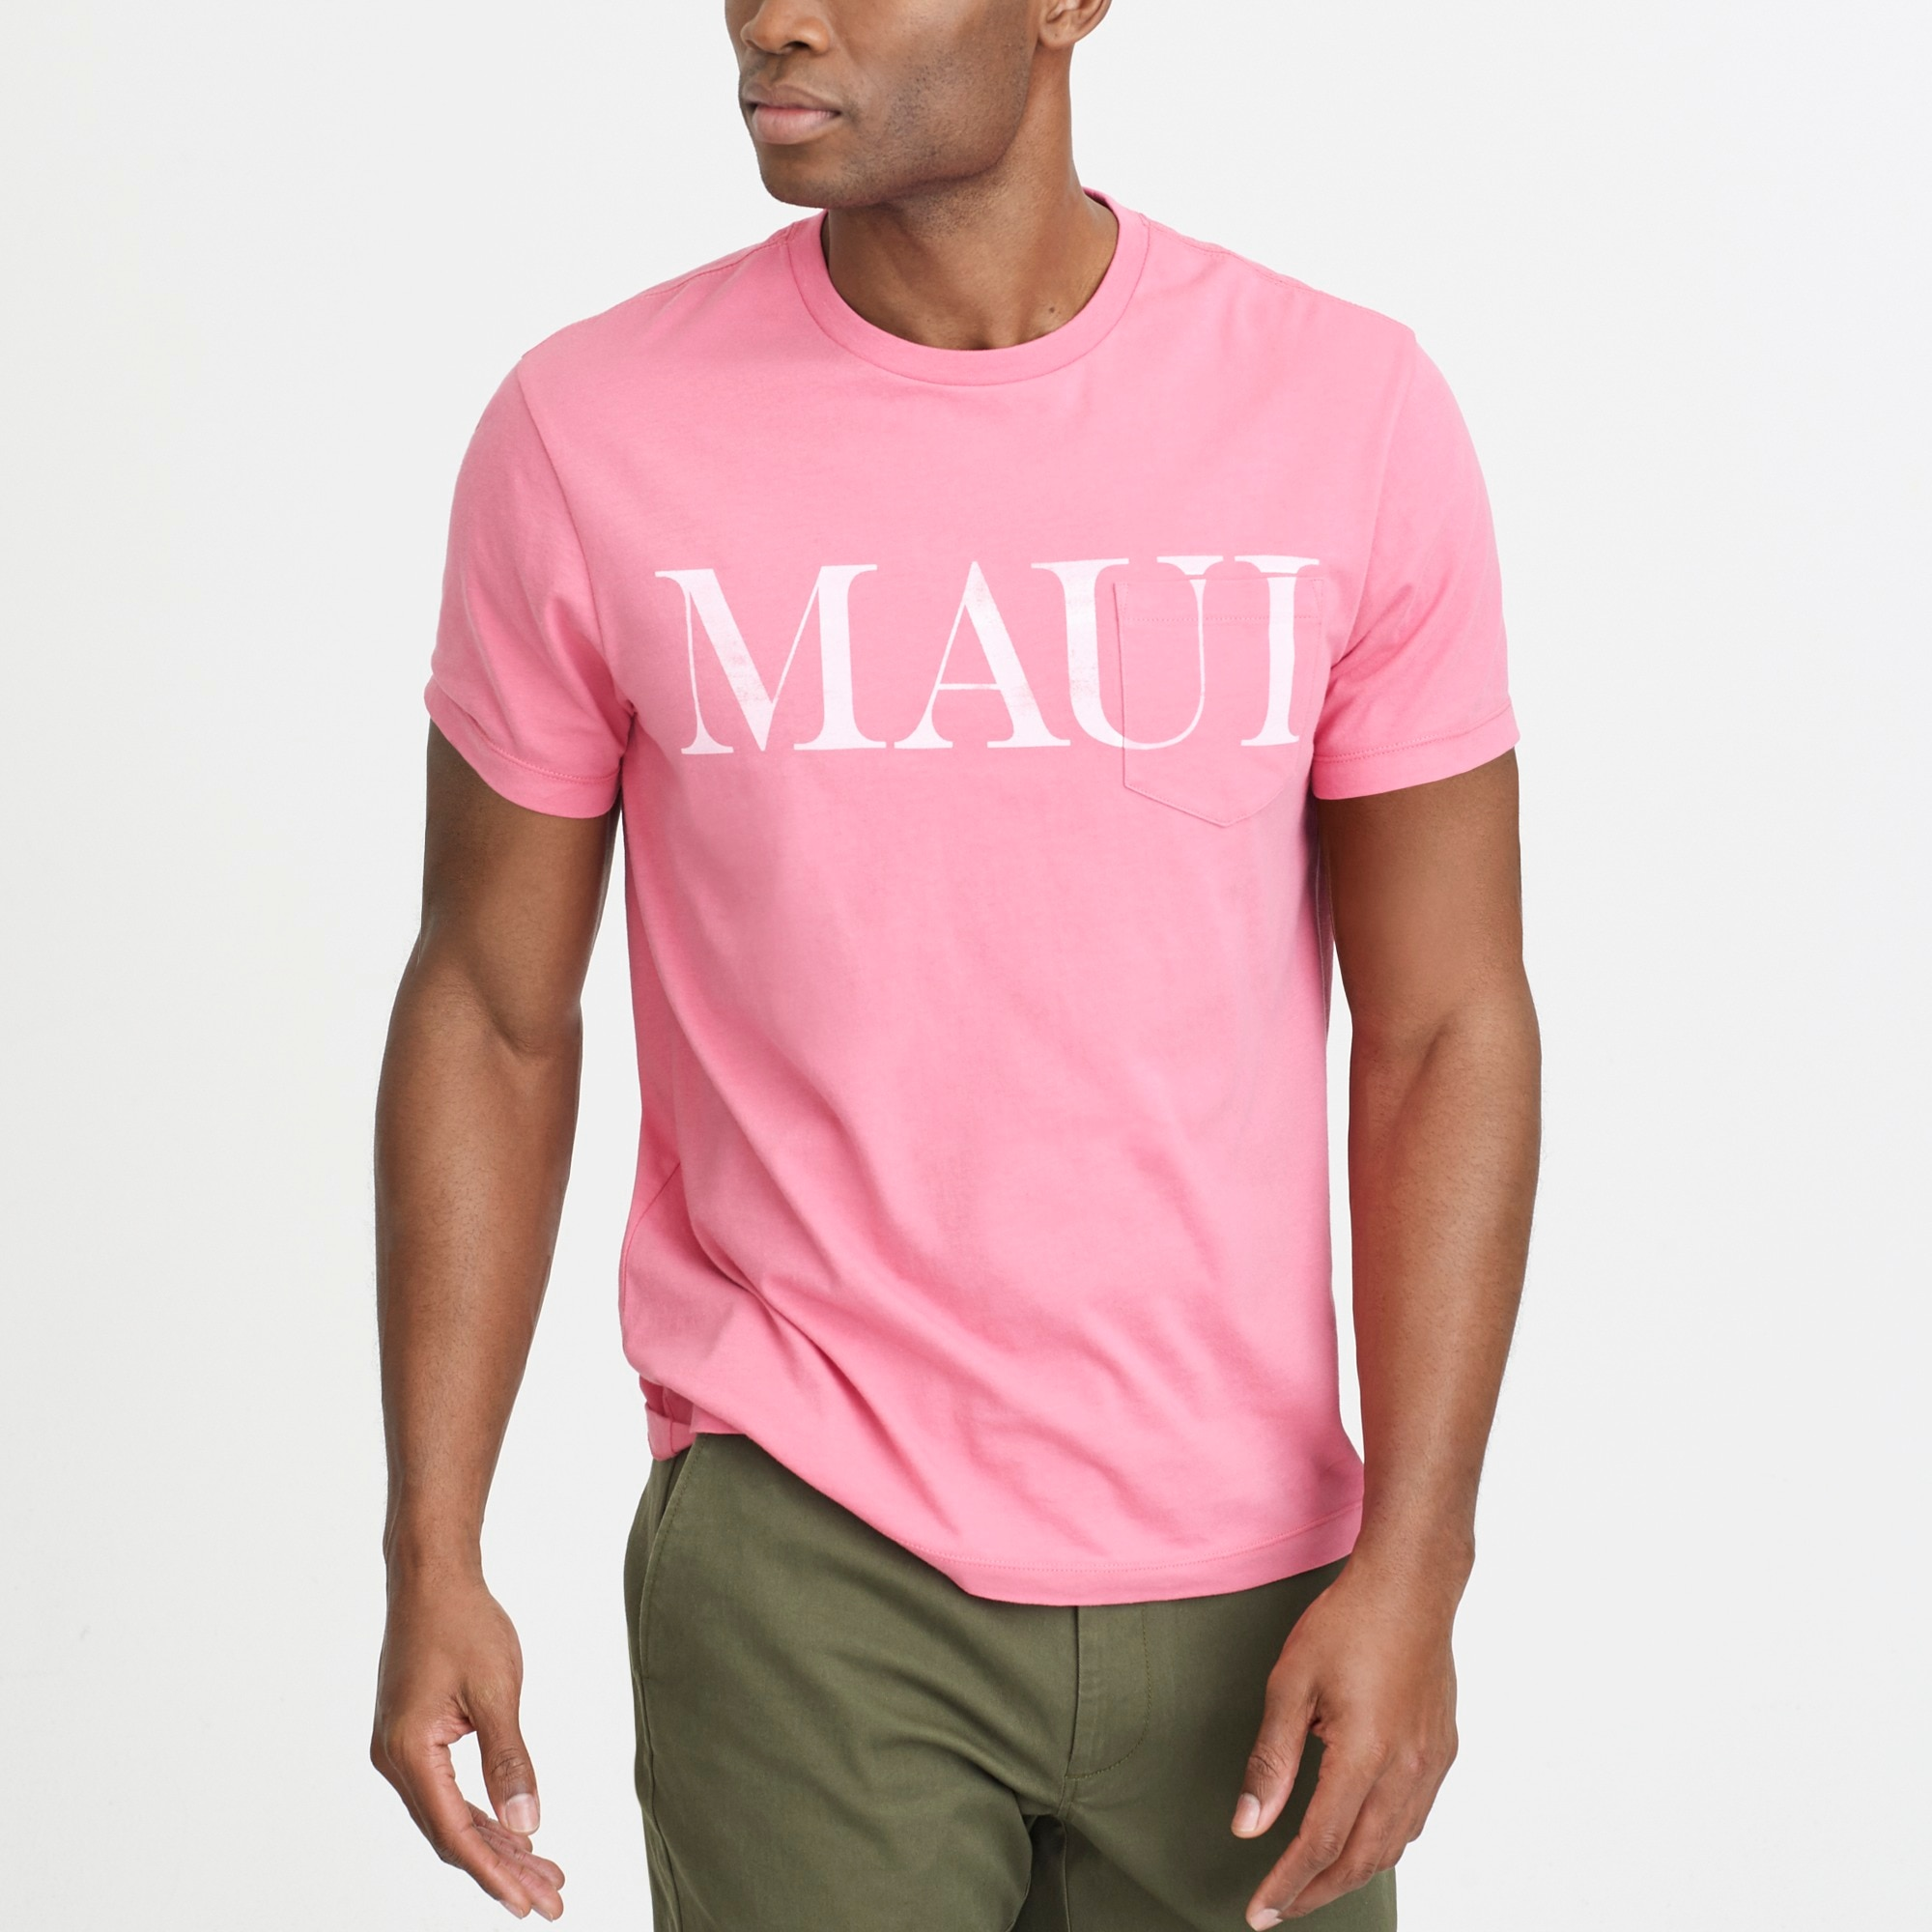 J.Crew Mercantile Broken-in Maui T-shirt factorymen t-shirts & henleys c